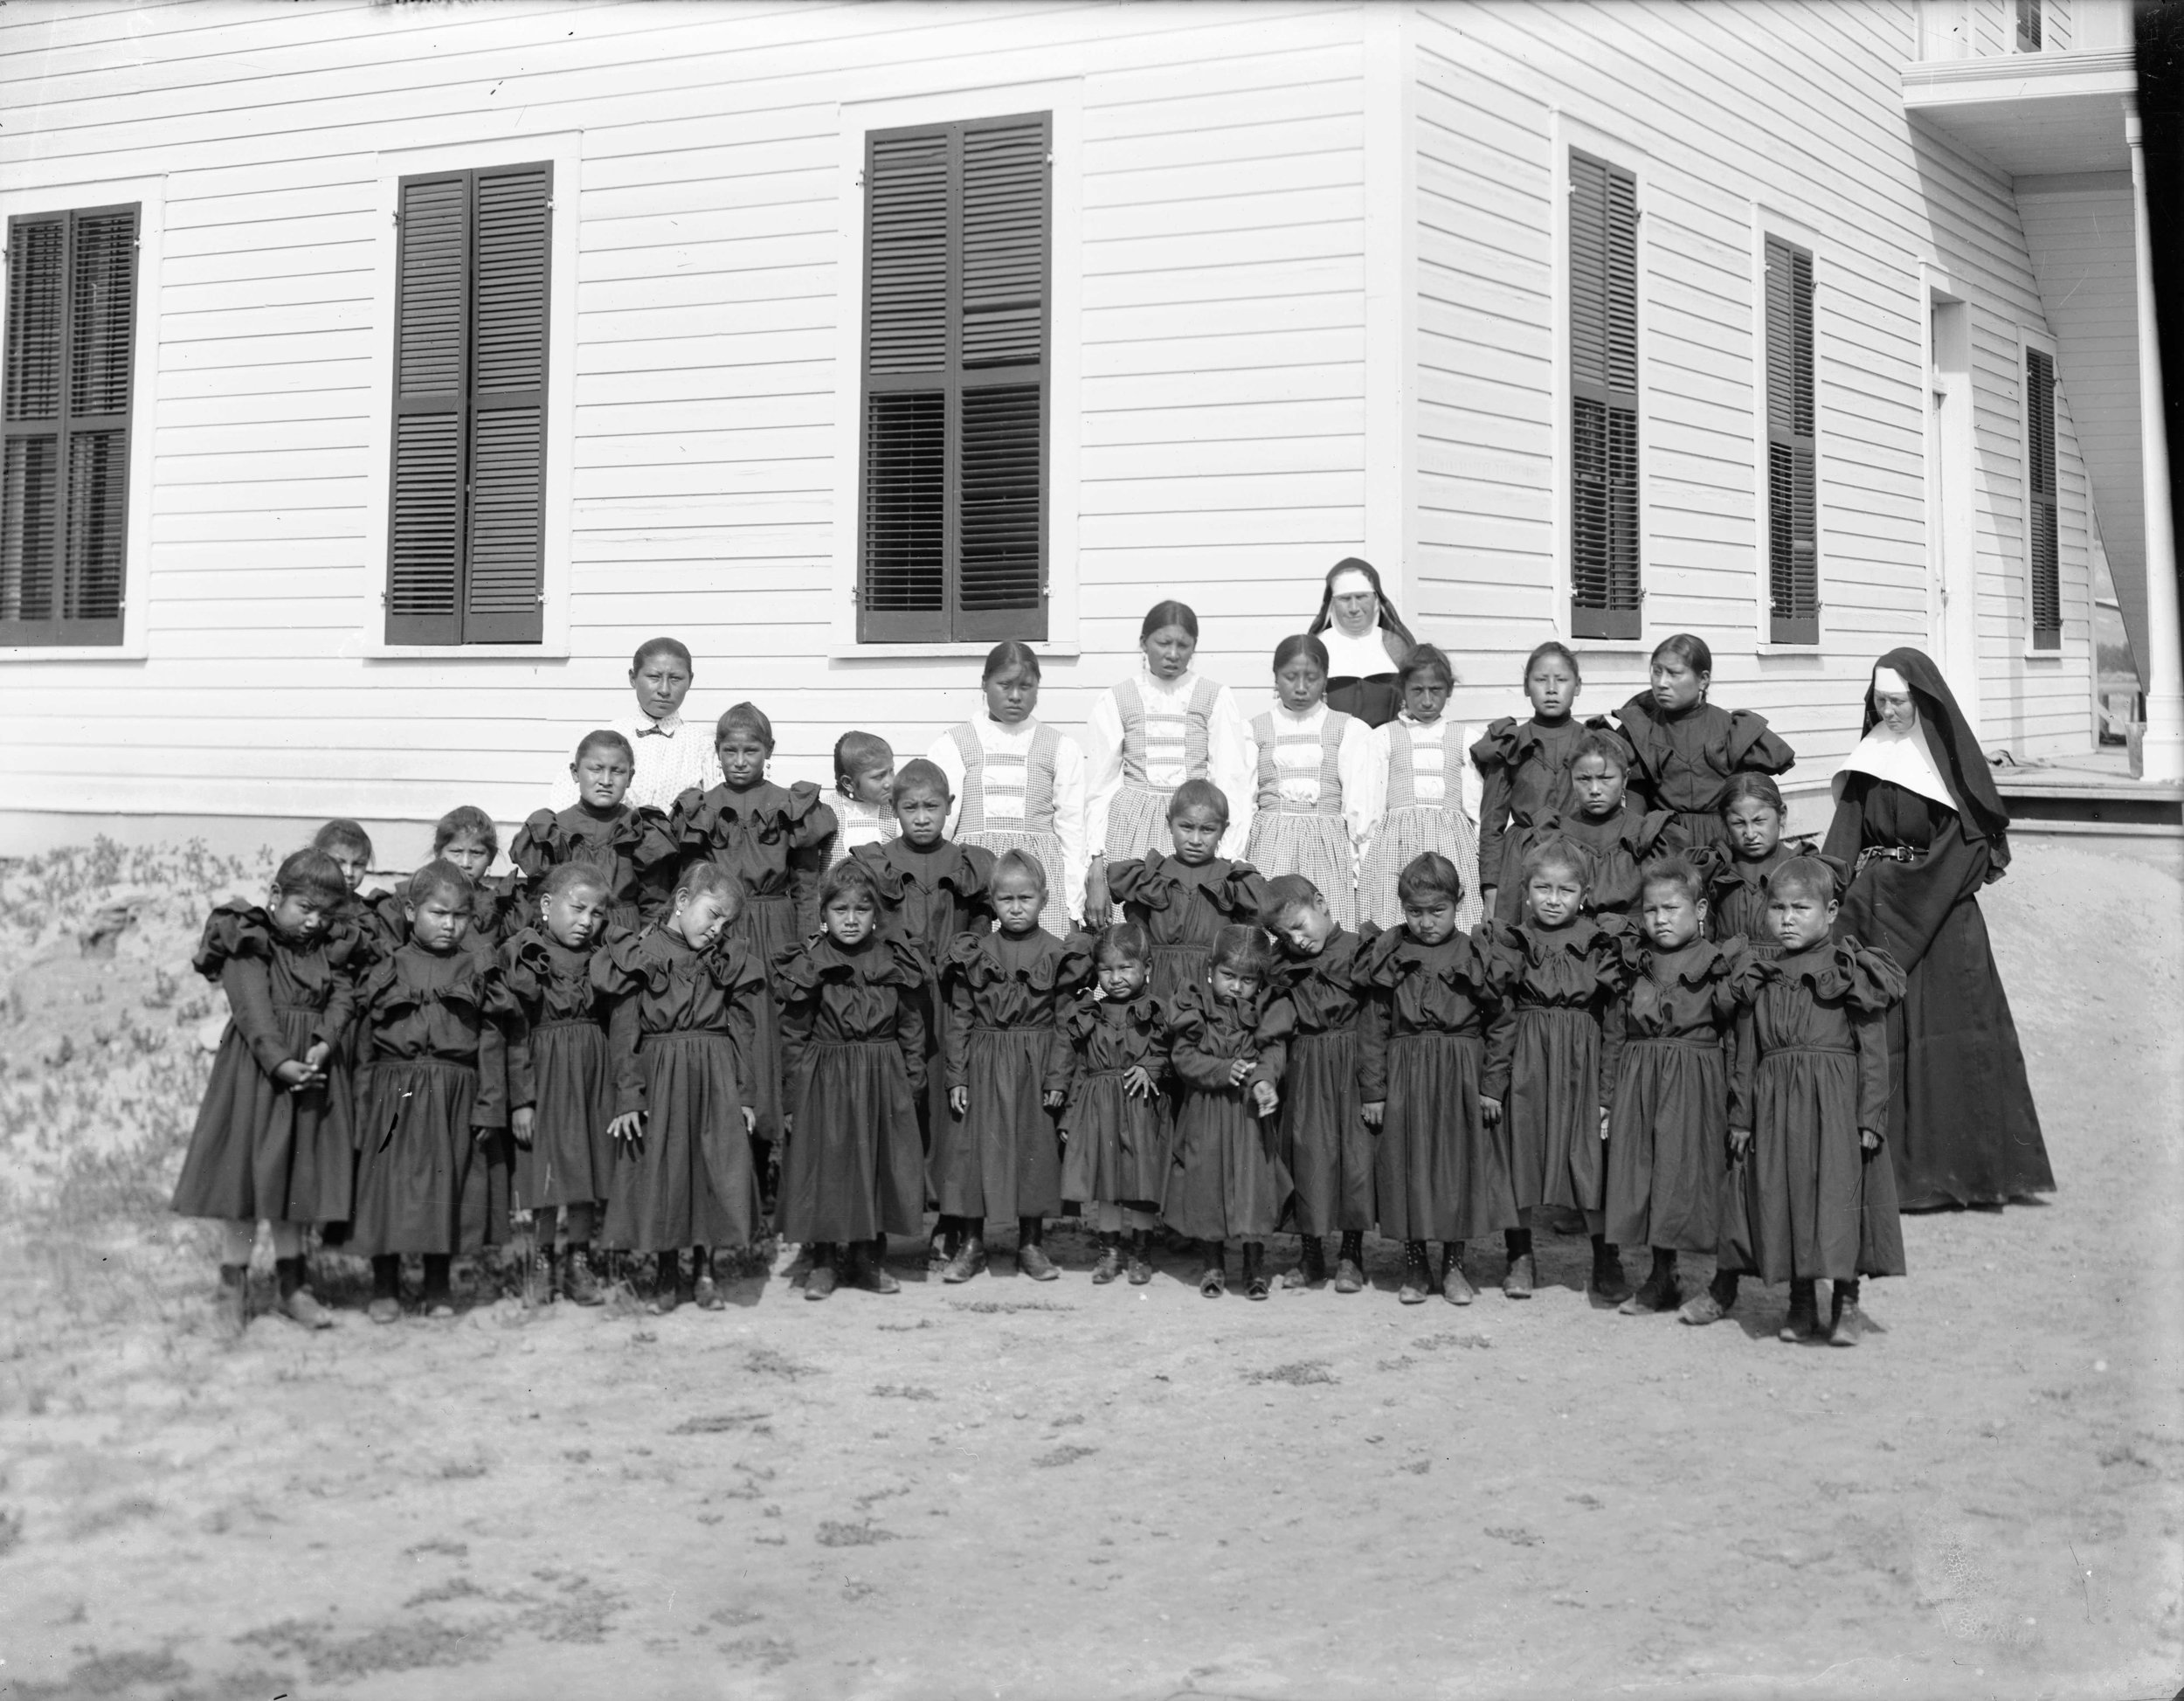 Children at Mandan Indian School 1900 courtesy of The Montana Historical Society Research Center Archives, Helena MT